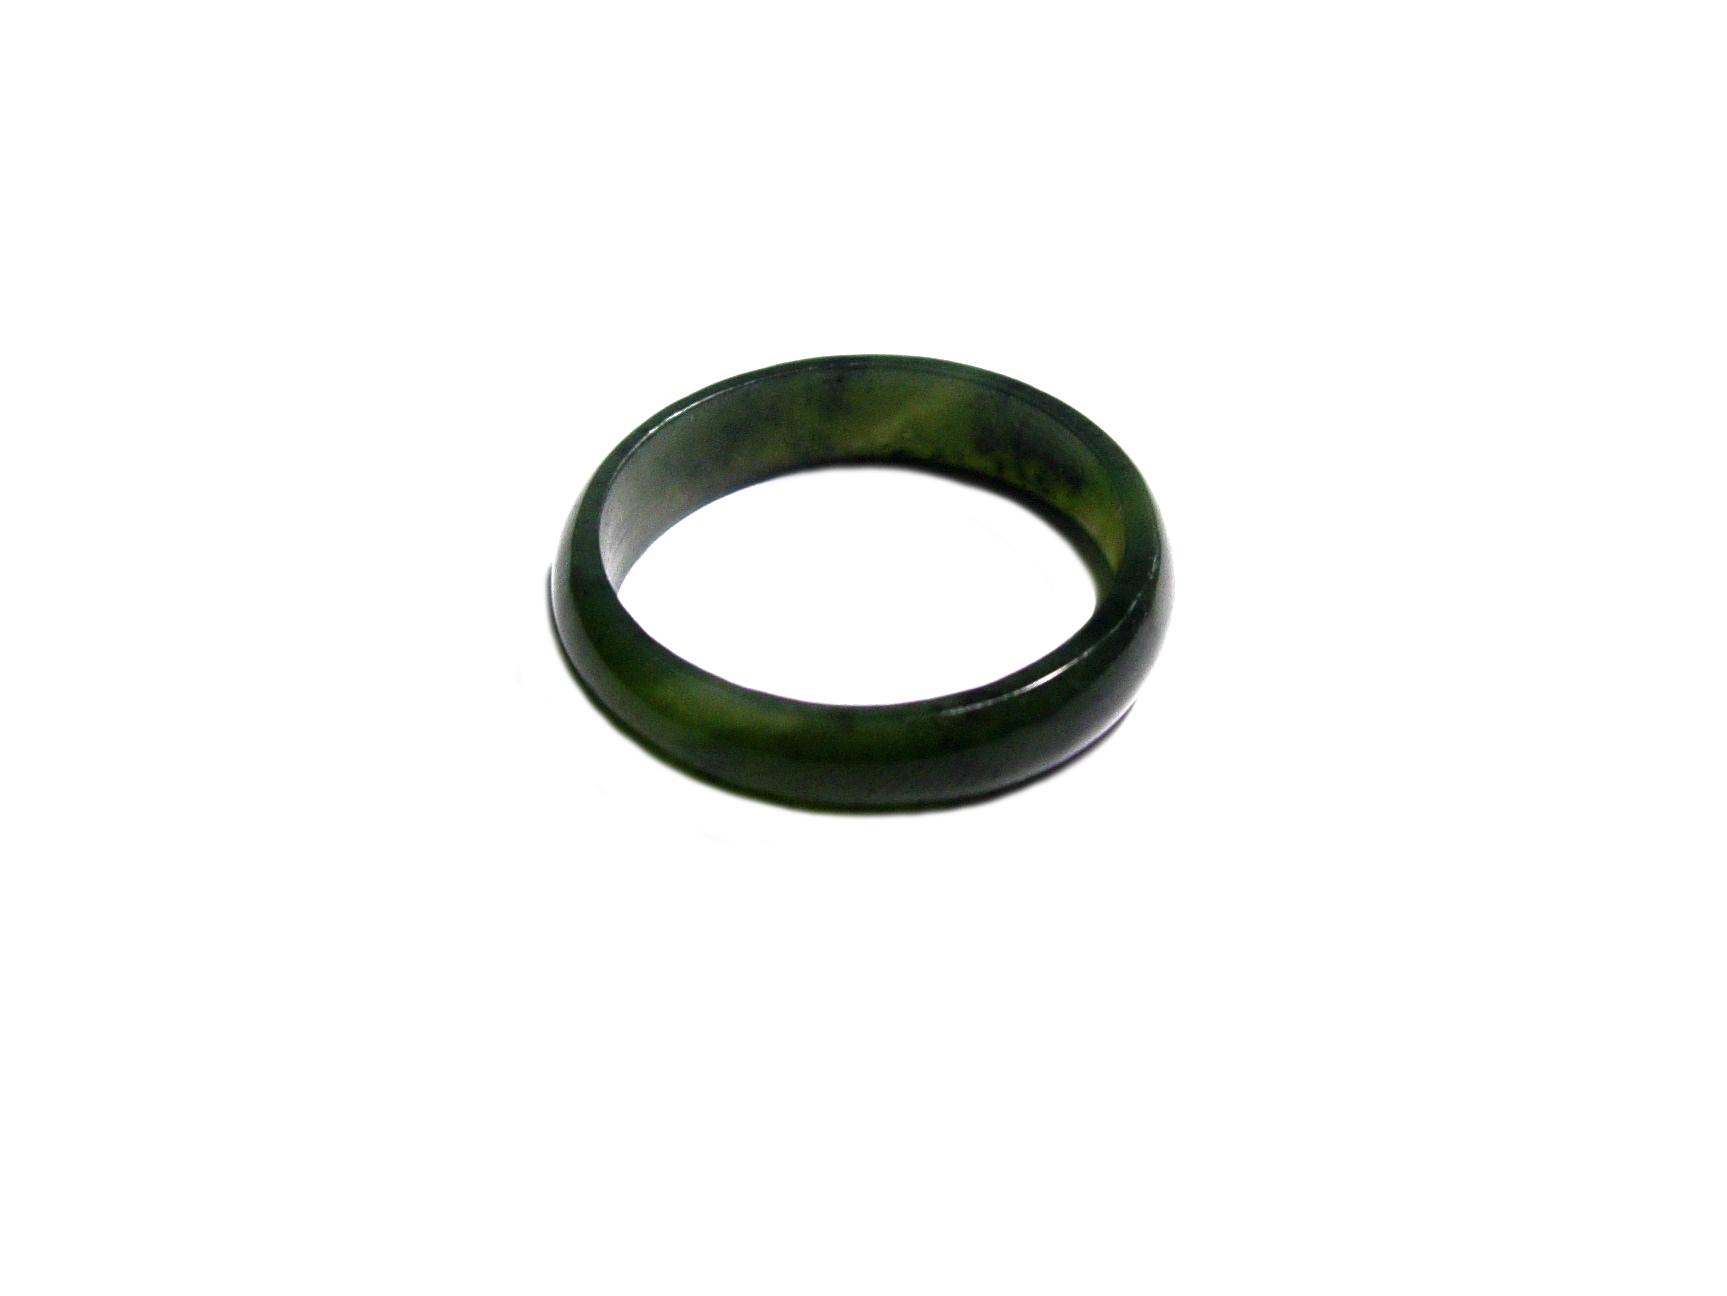 JADE 5MM BAND RING – SIZE US7 (17.35mm)